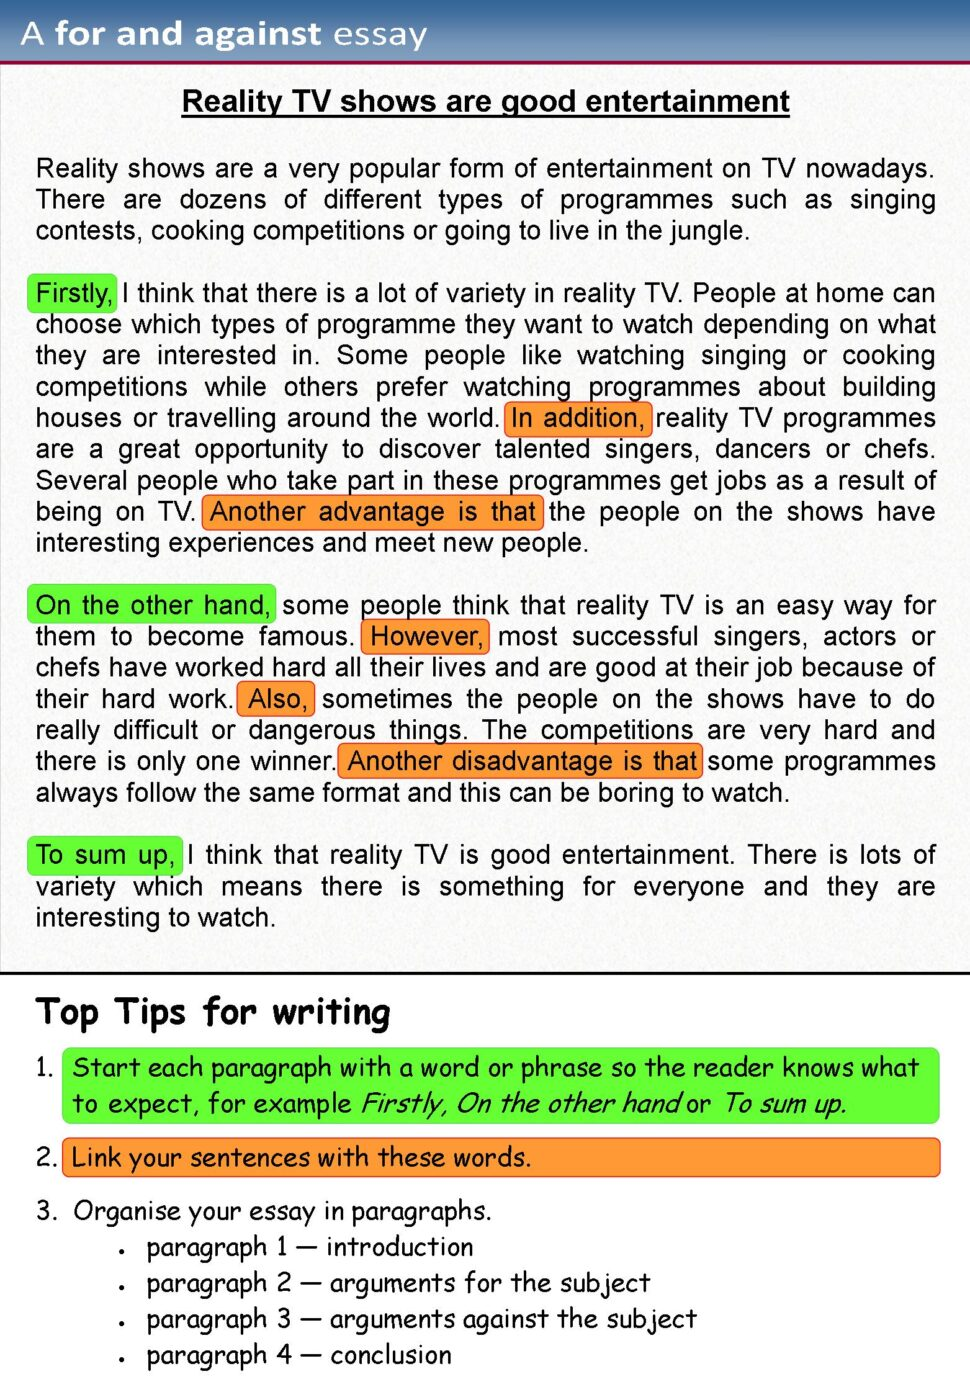 Large Size of Structure Template Rough Draft Outline Law Essay Plan 3 Introduction